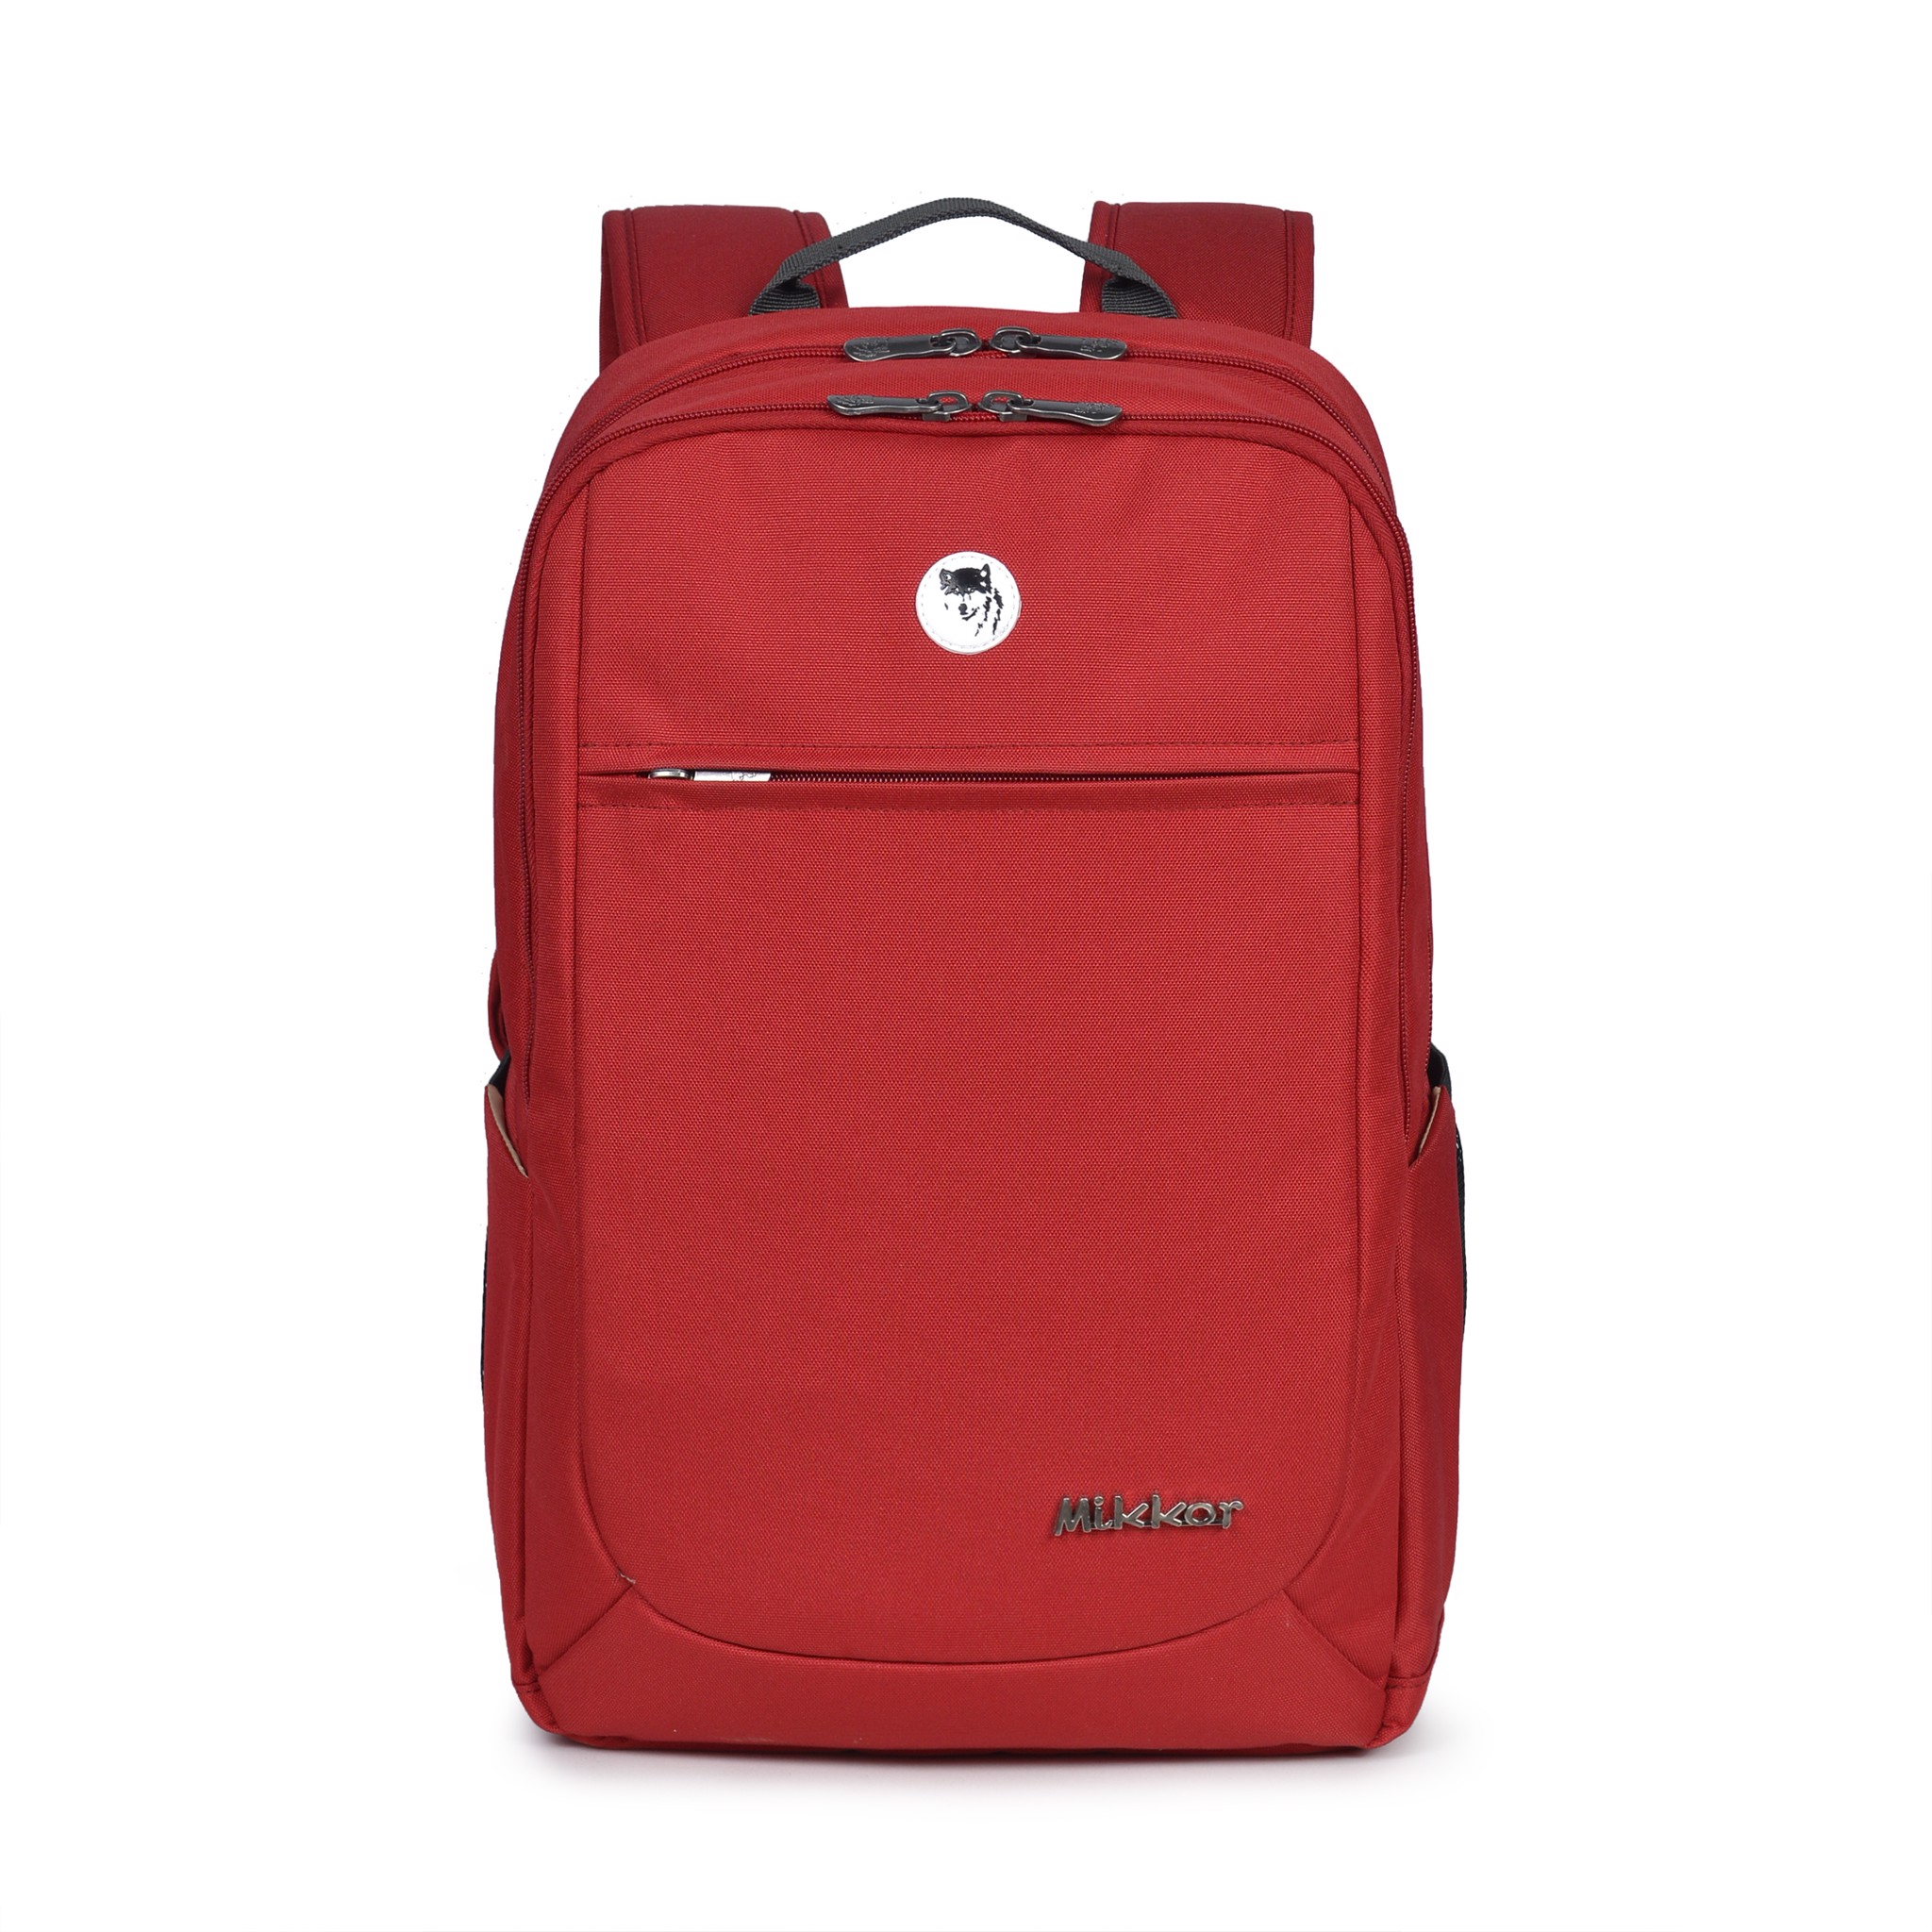 Balo Thời Trang The Edwin Backpack Red